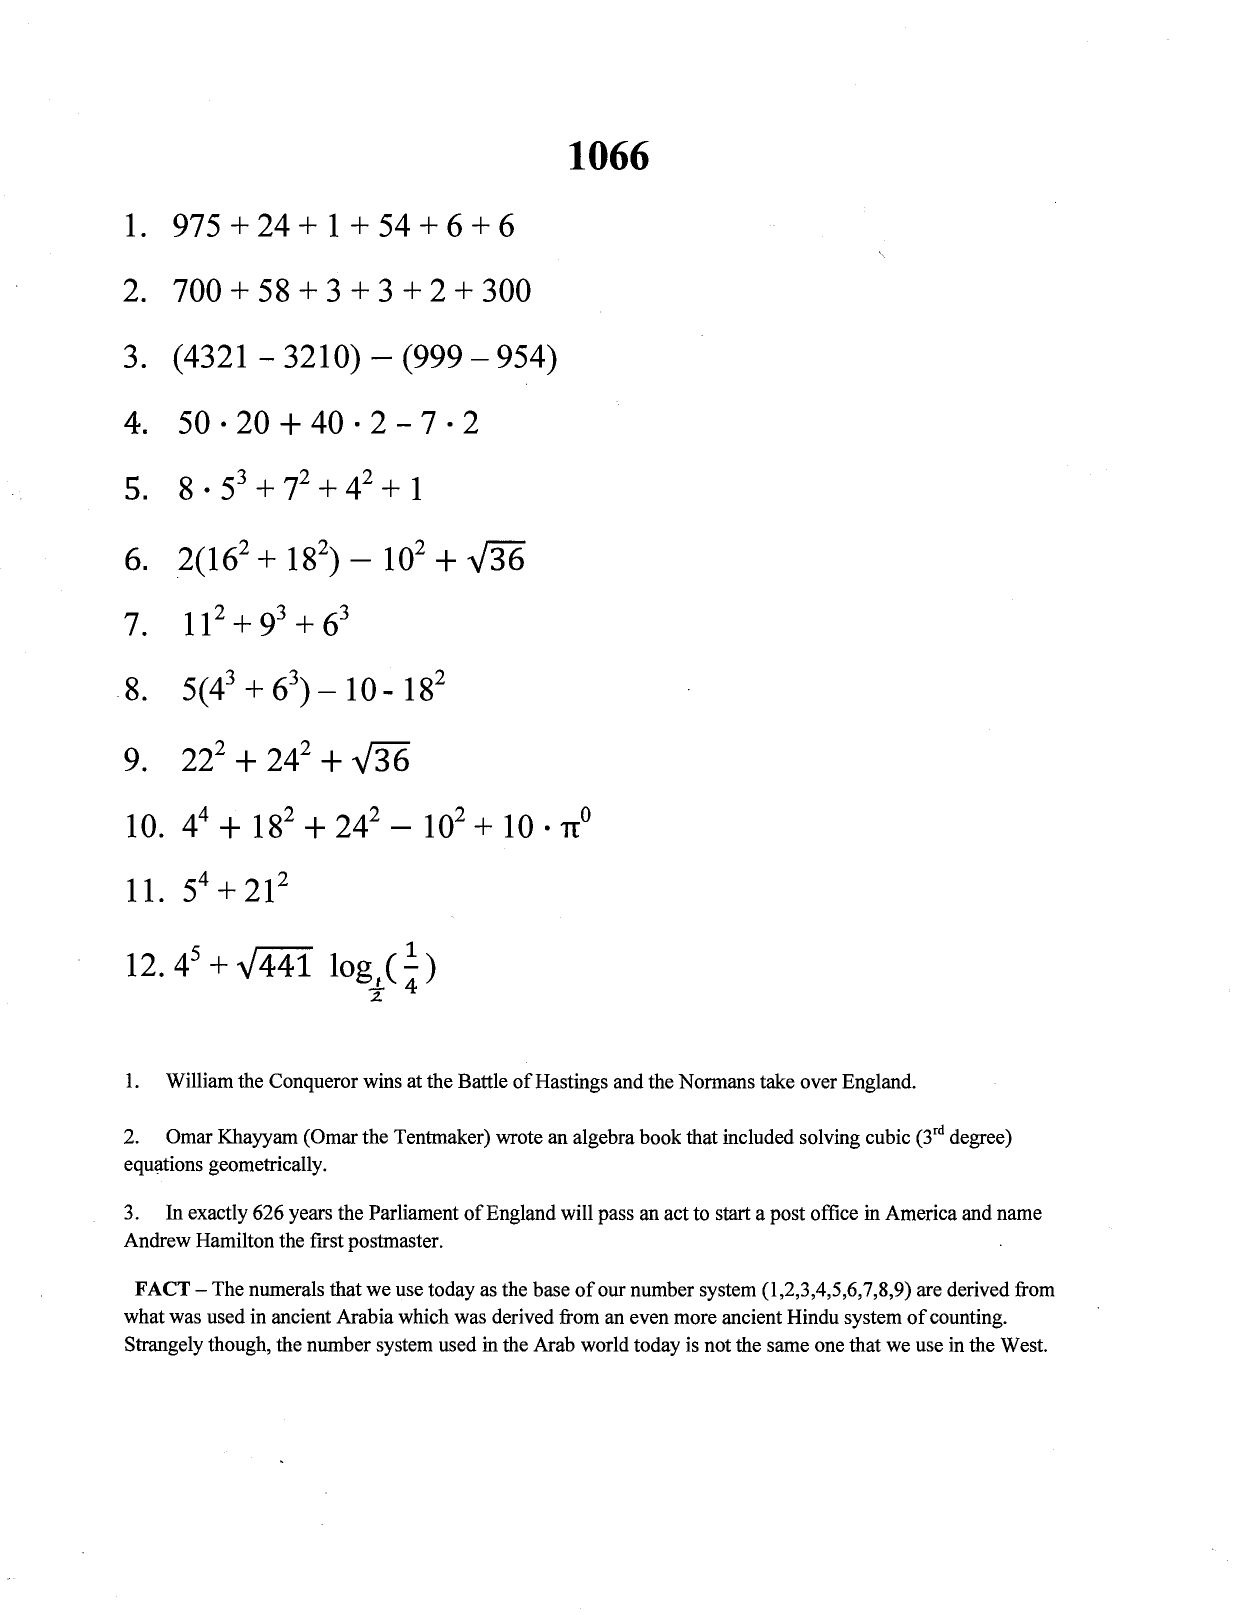 Can You Decipher The Quotation Math Worksheet Answers